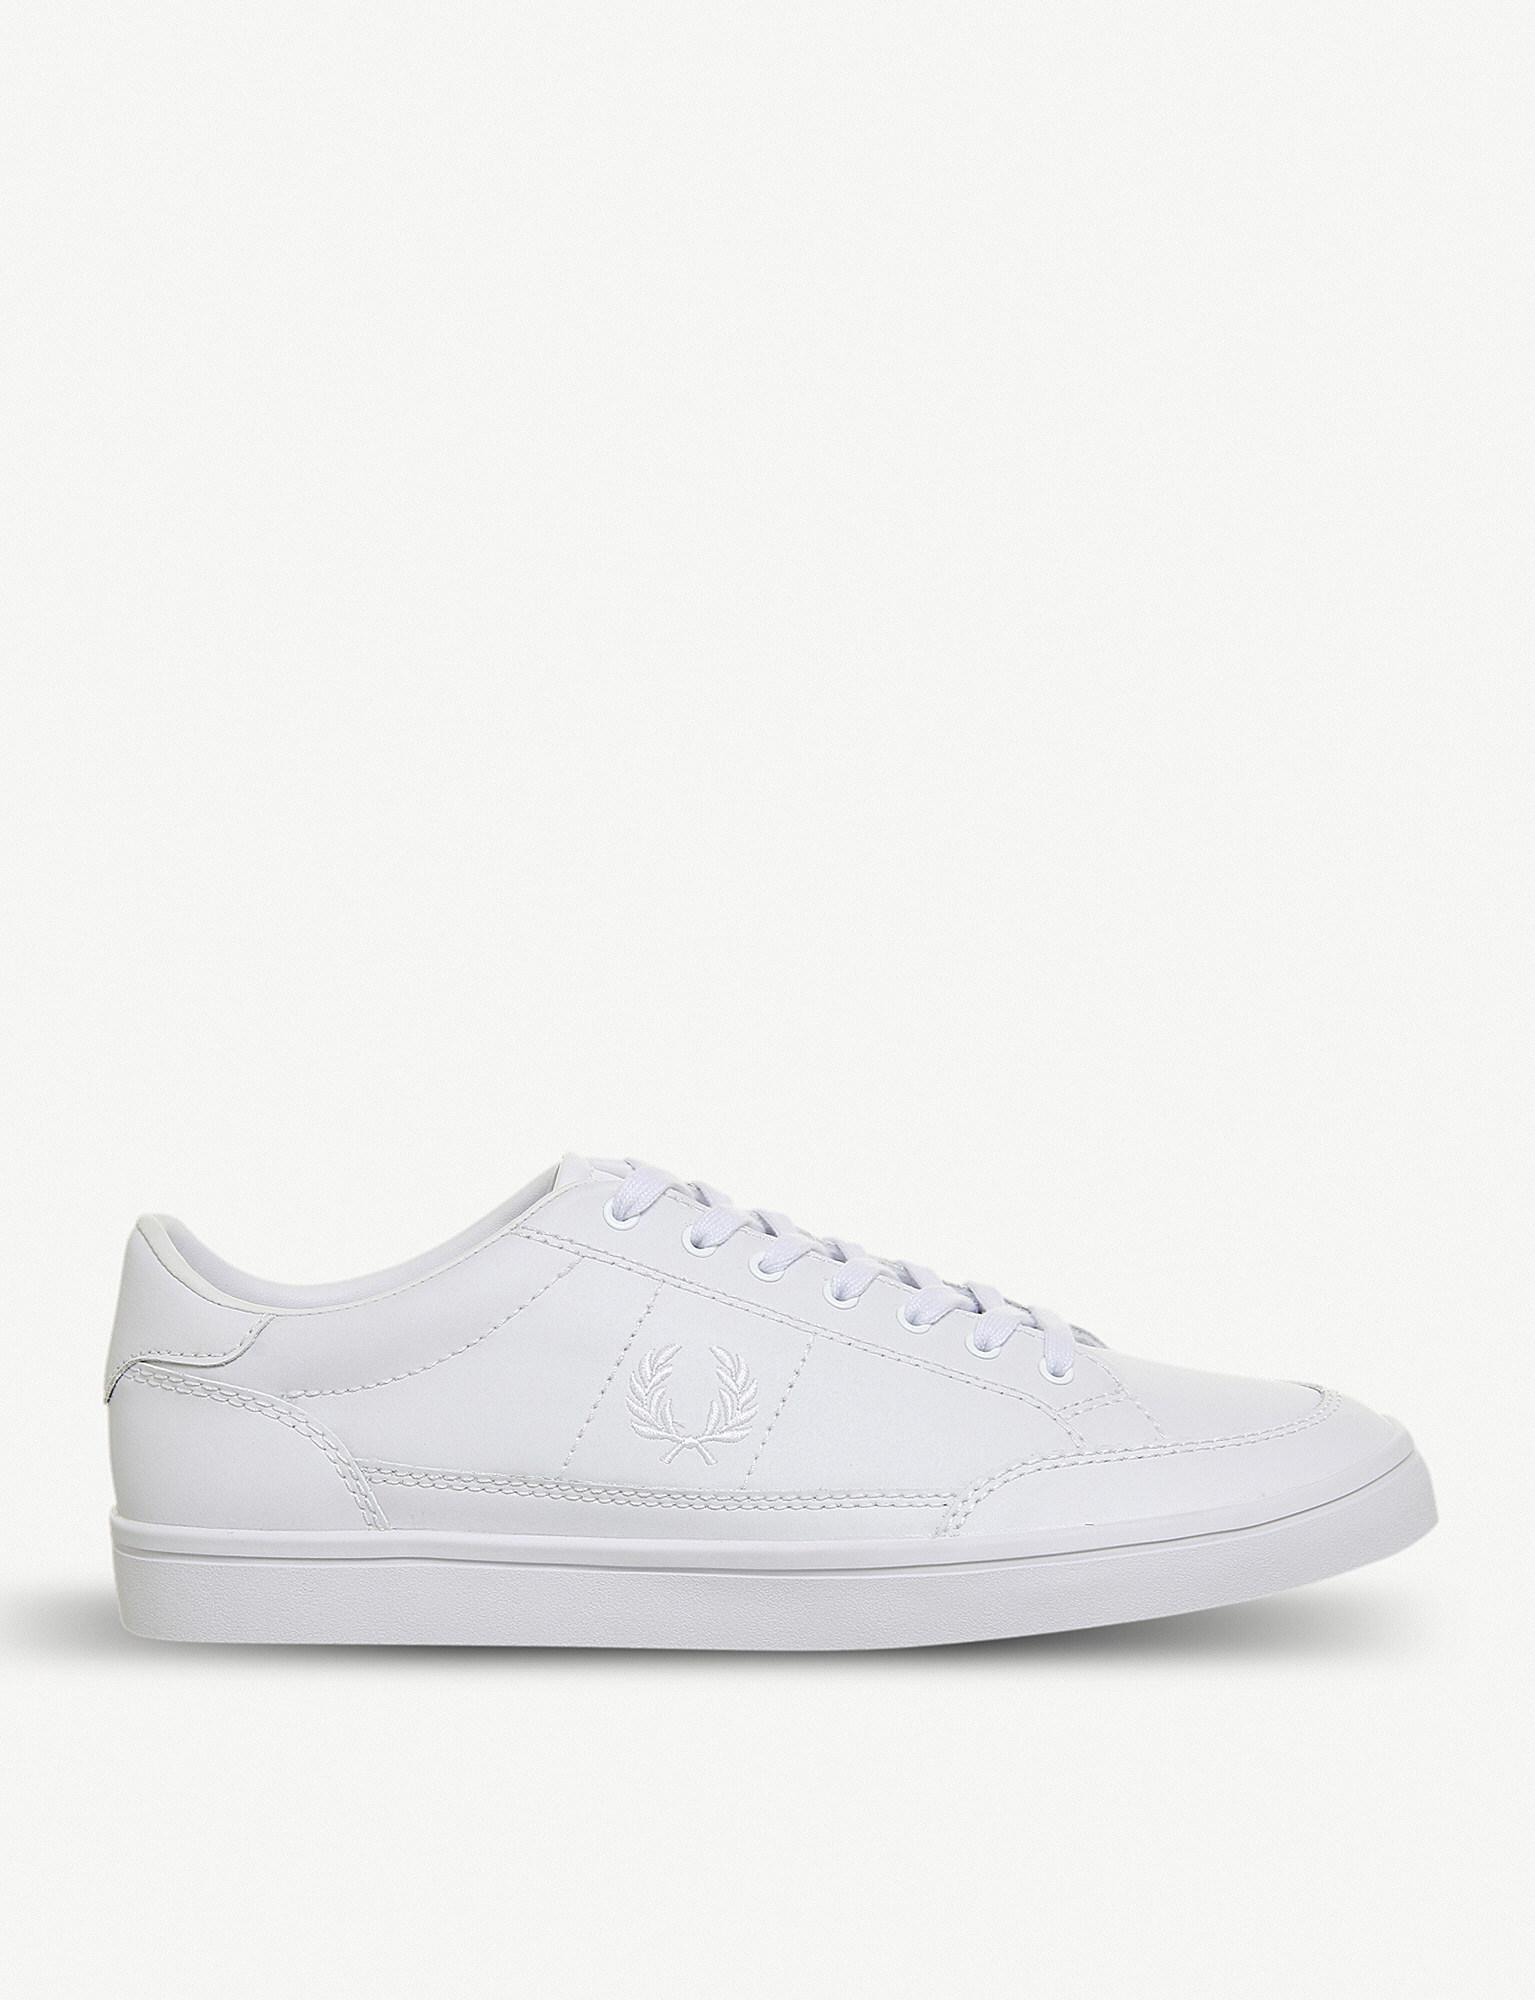 4ea87f4668b72 Fred Perry White Deuce Leather Tennis Trainers